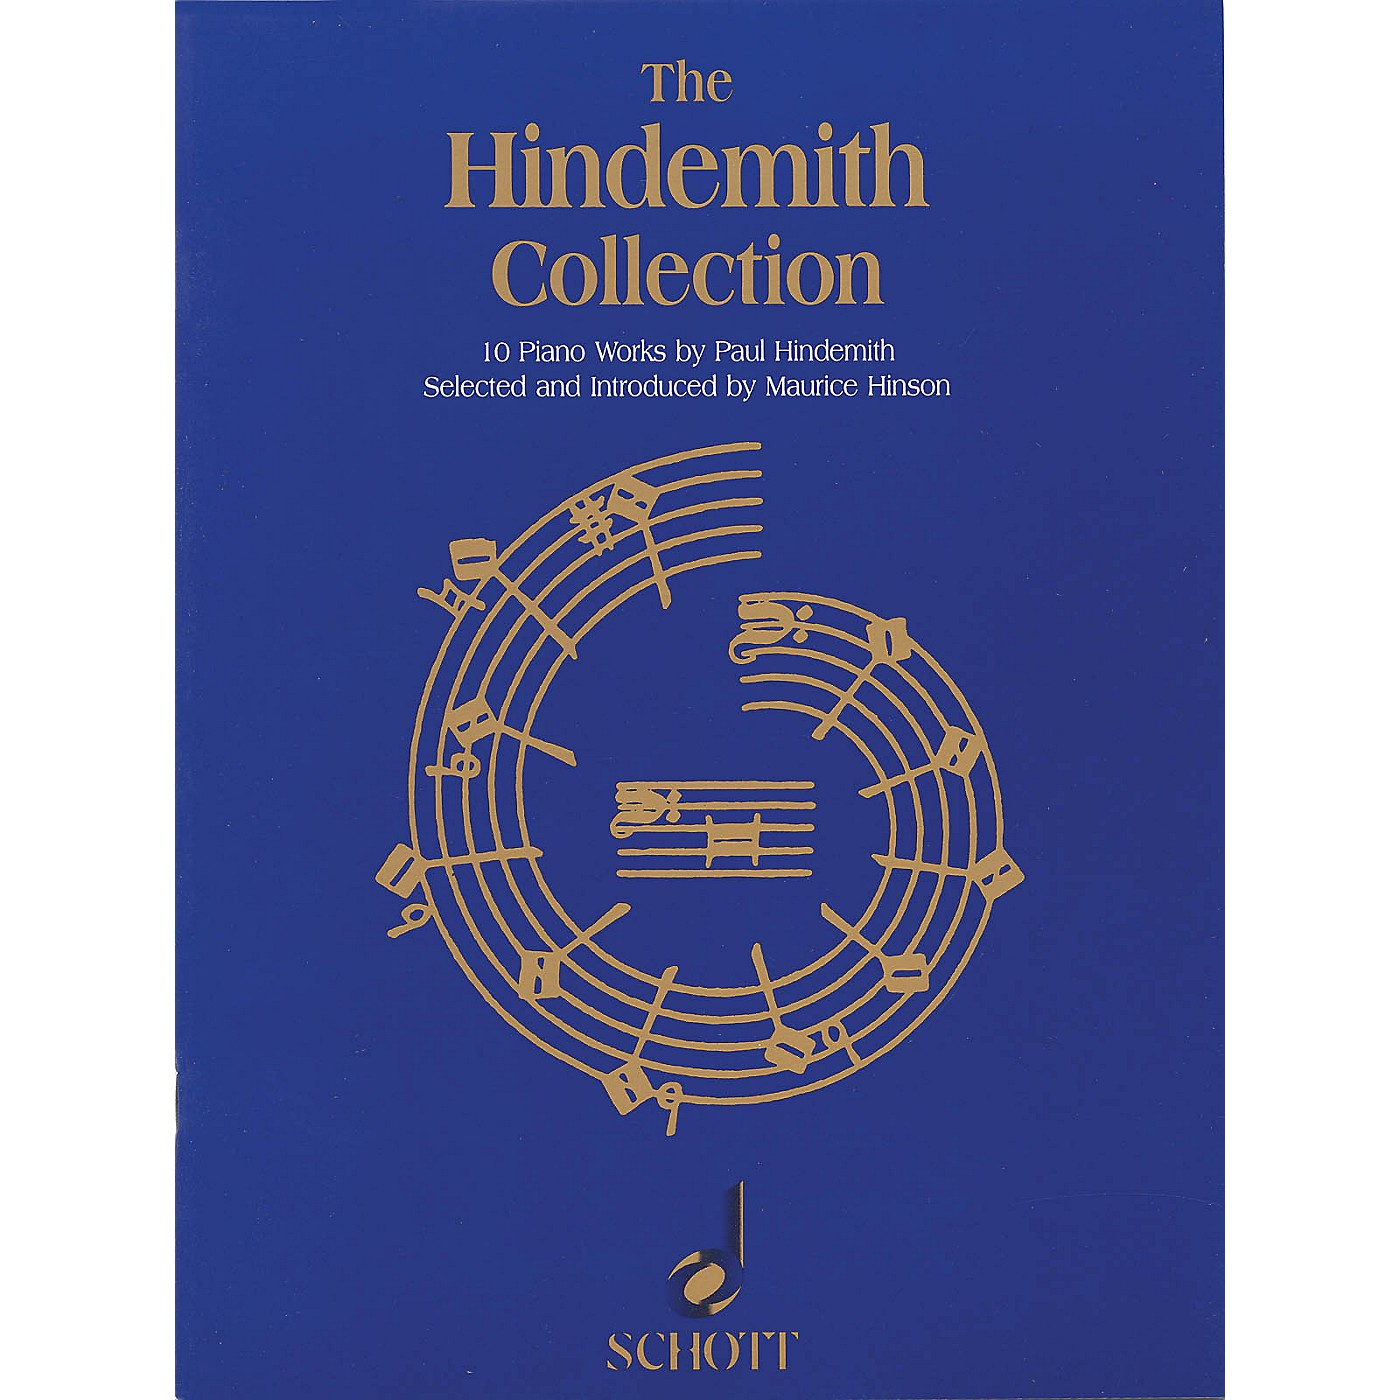 Schott The Hindemith Collection (10 Piano Works by Paul Hindemith) Schott Series Softcover thumbnail